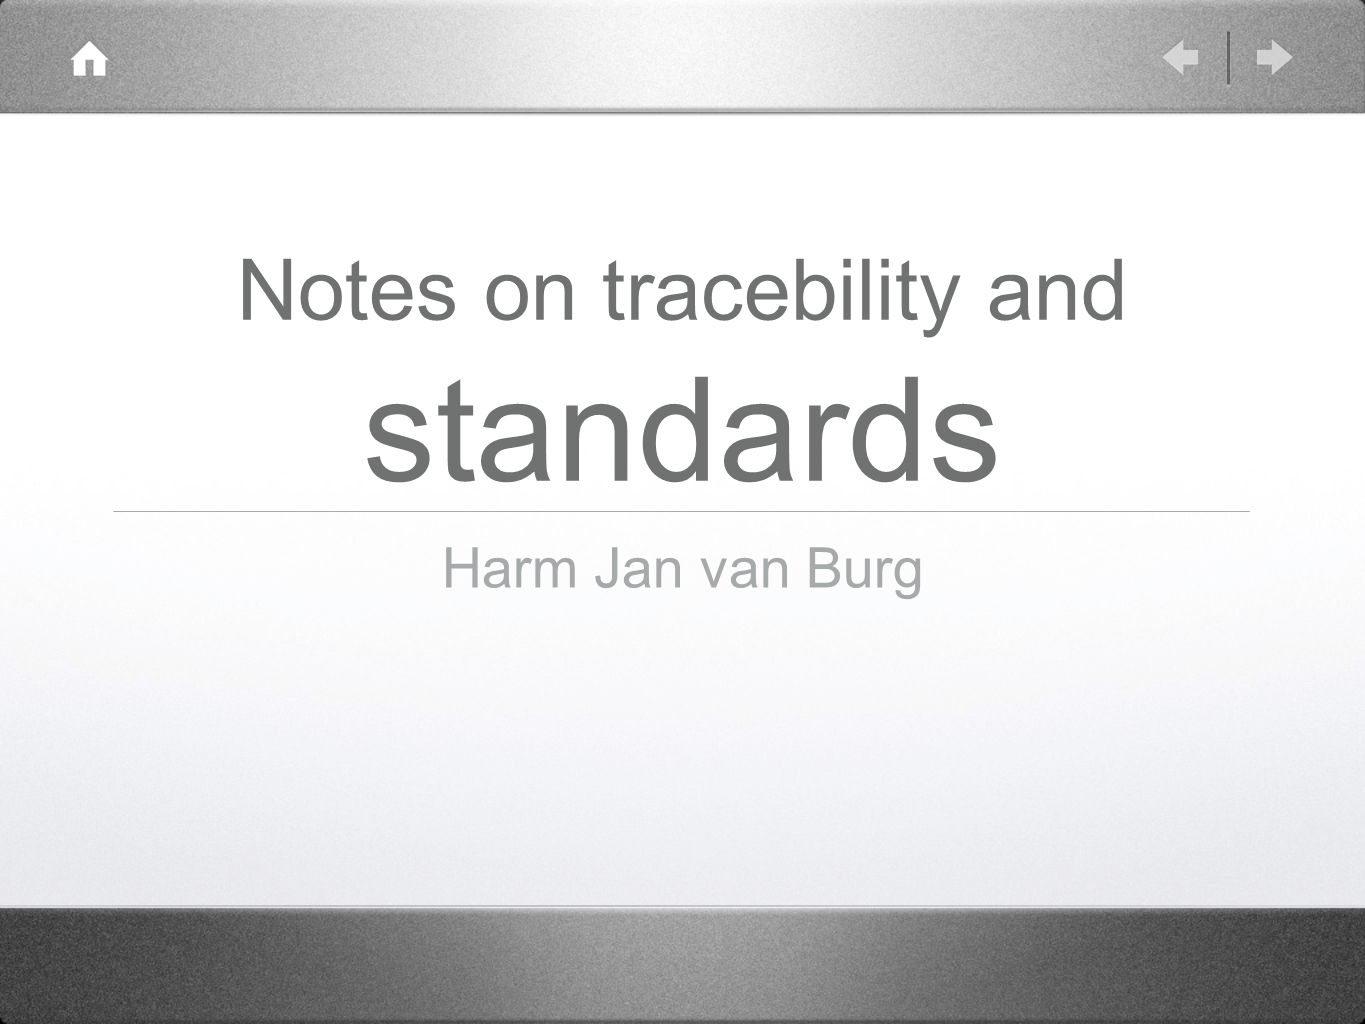 Notes on tracebility and standards